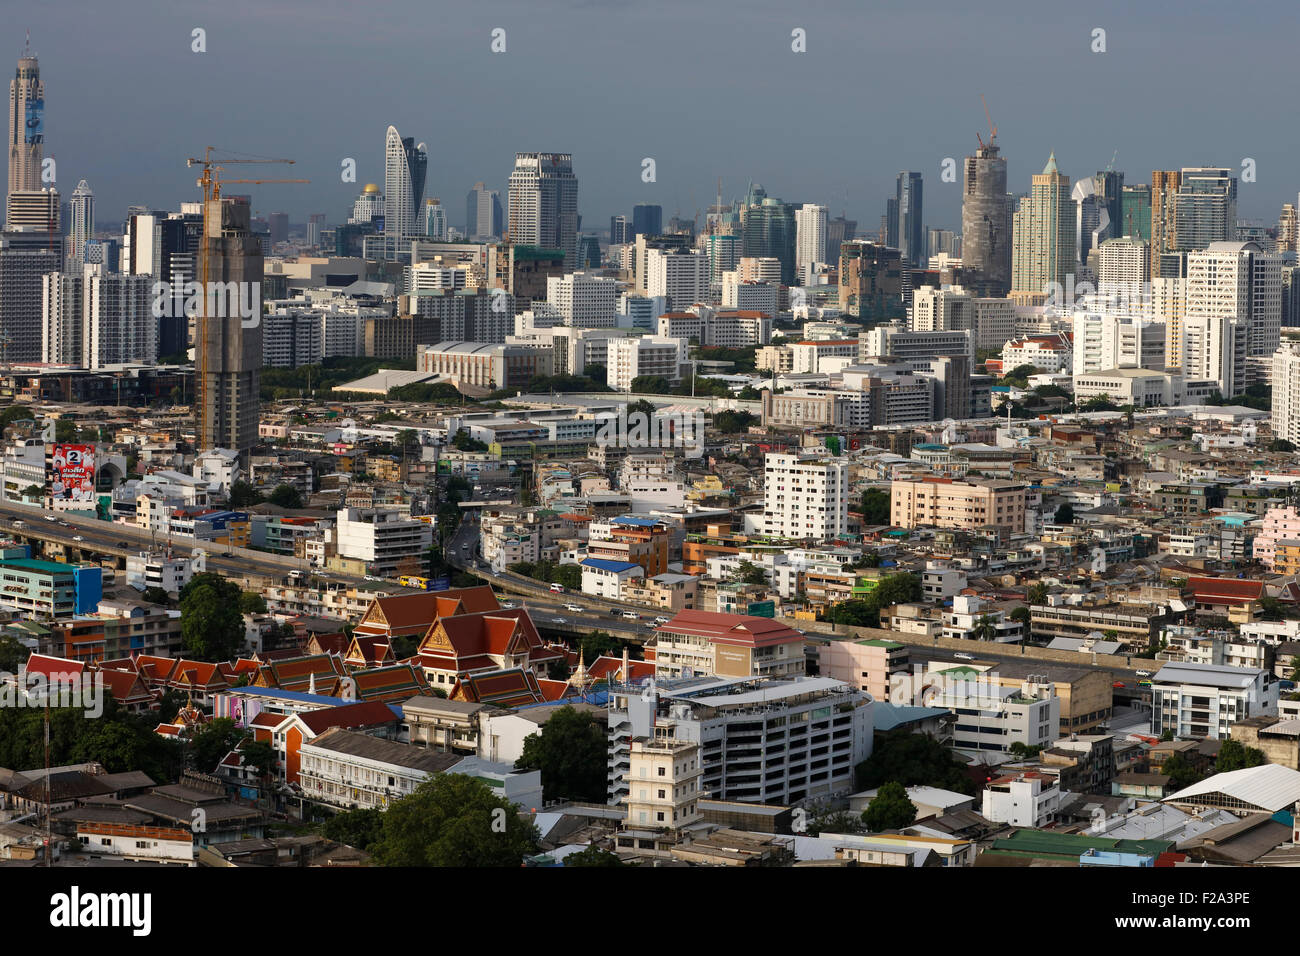 Views of the city center by the Chao Phraya River, Bangkok, Thailand - Stock Image